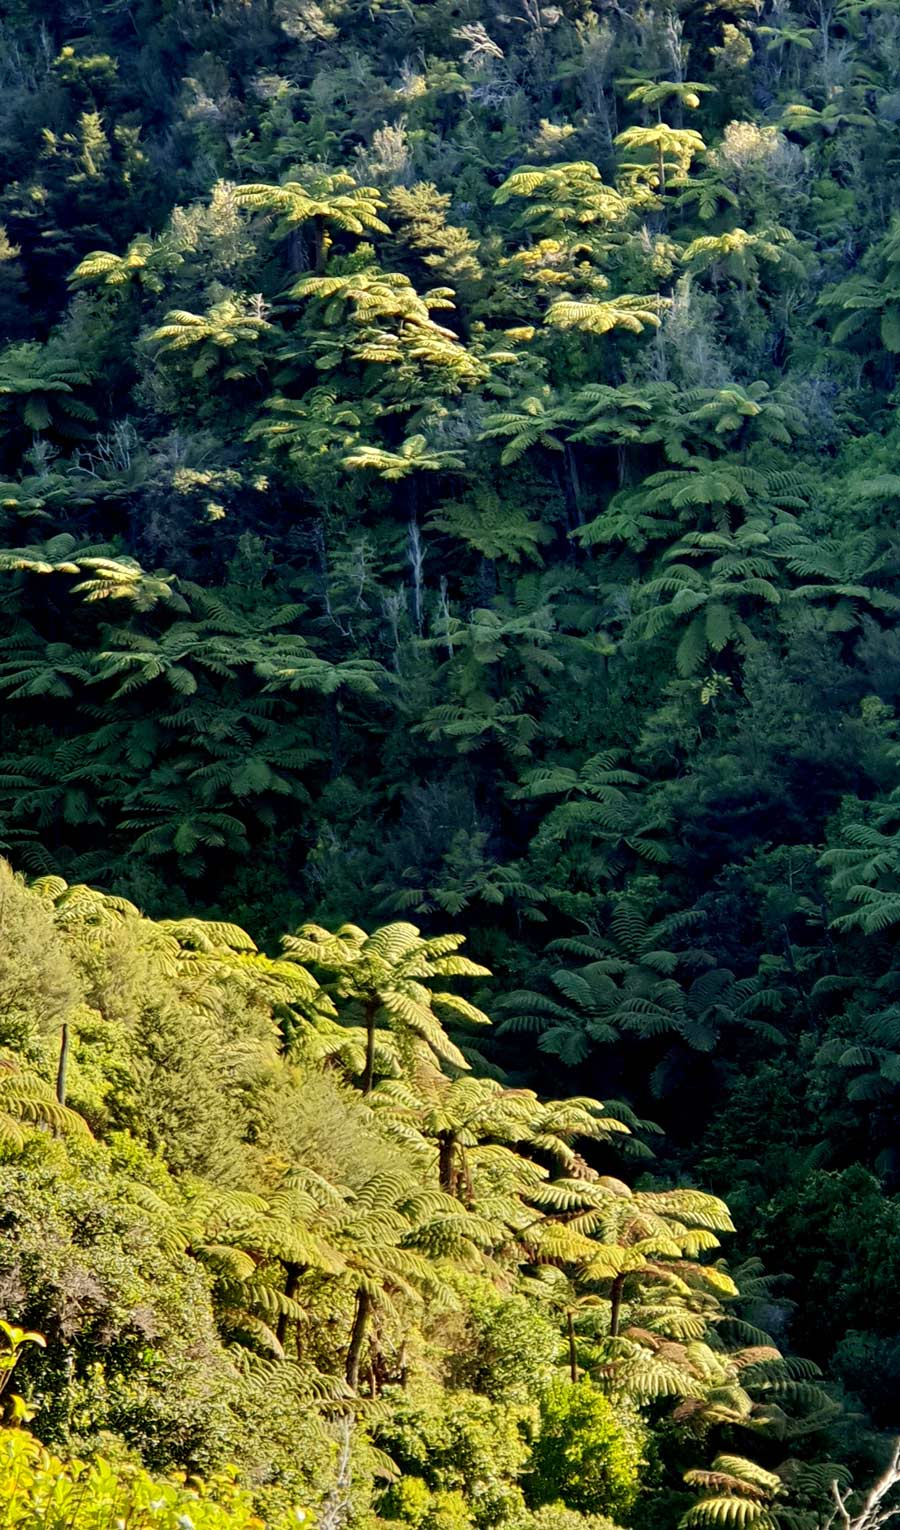 Enjoy a bush walk in New Zealand's Abel Tasman National Park